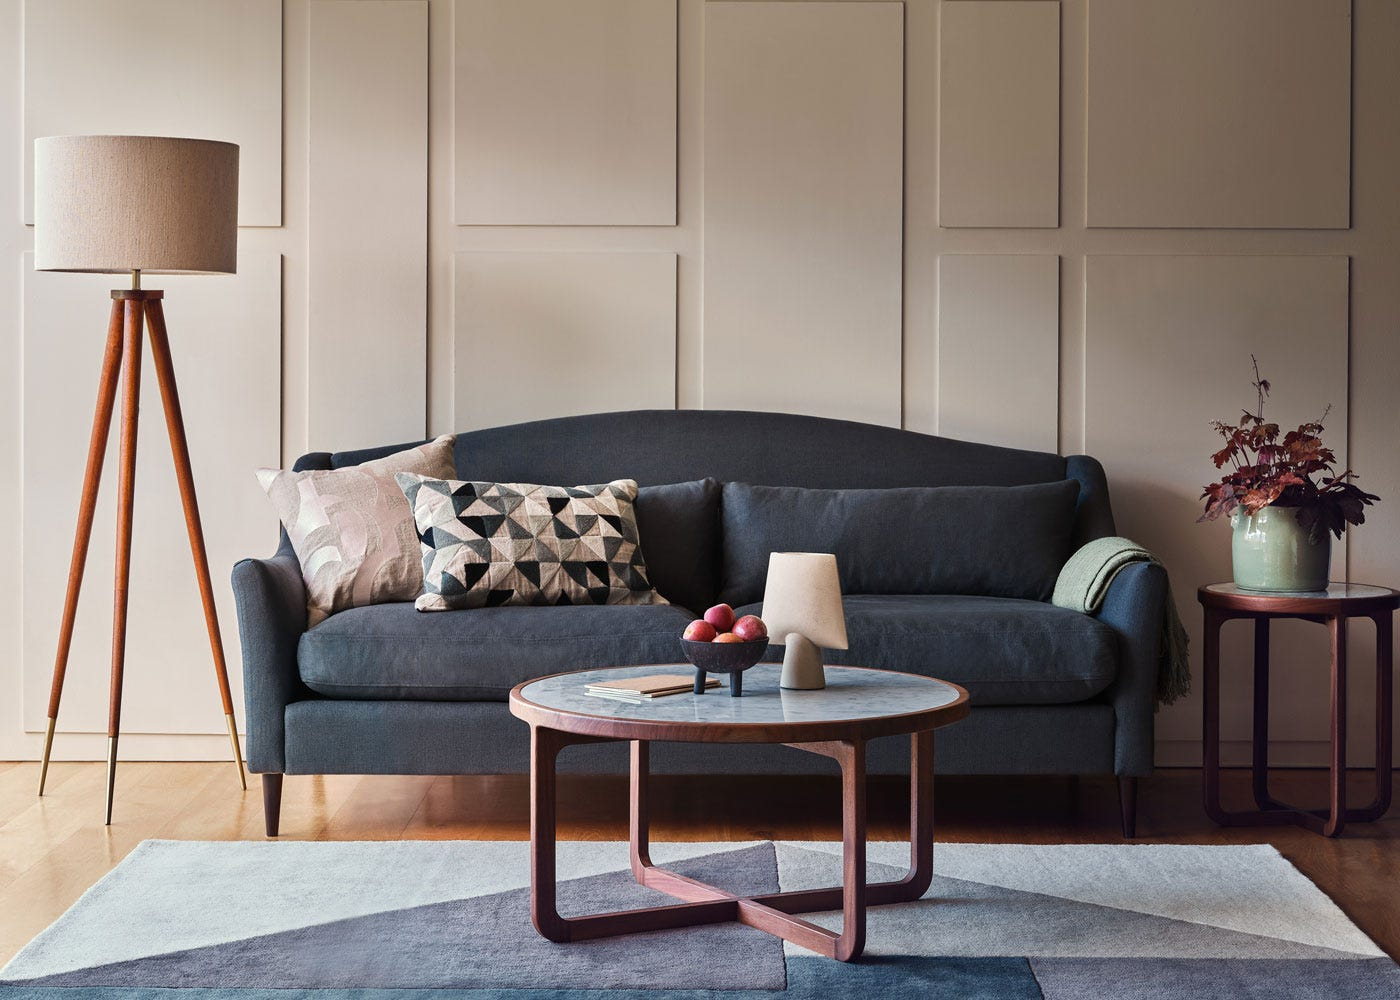 Hawkins floor lamp with shade, Somerset sofa, Anais coffee and side tables.